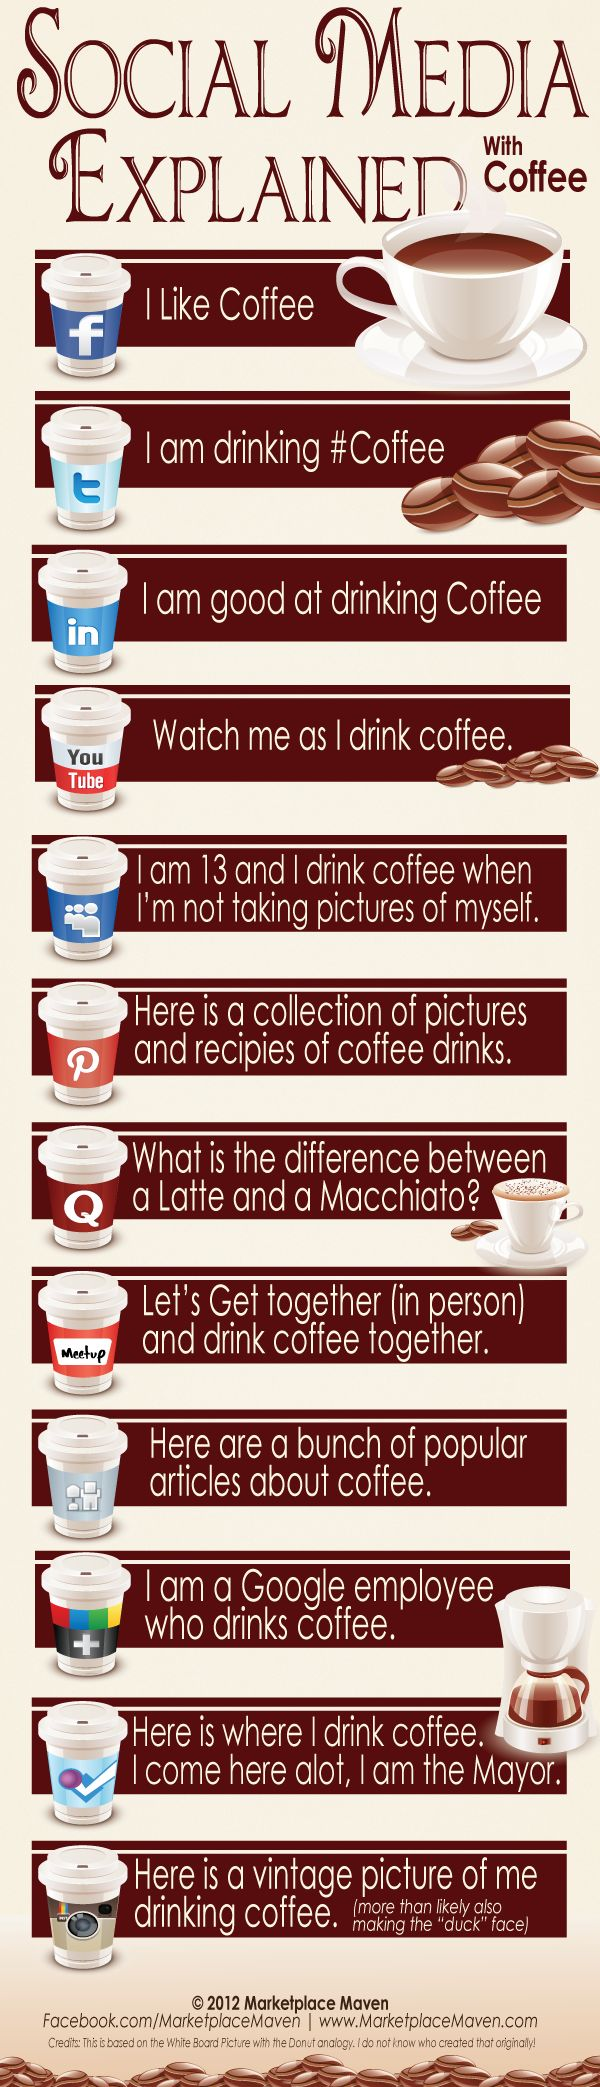 SocialMediaExplained - with coffee